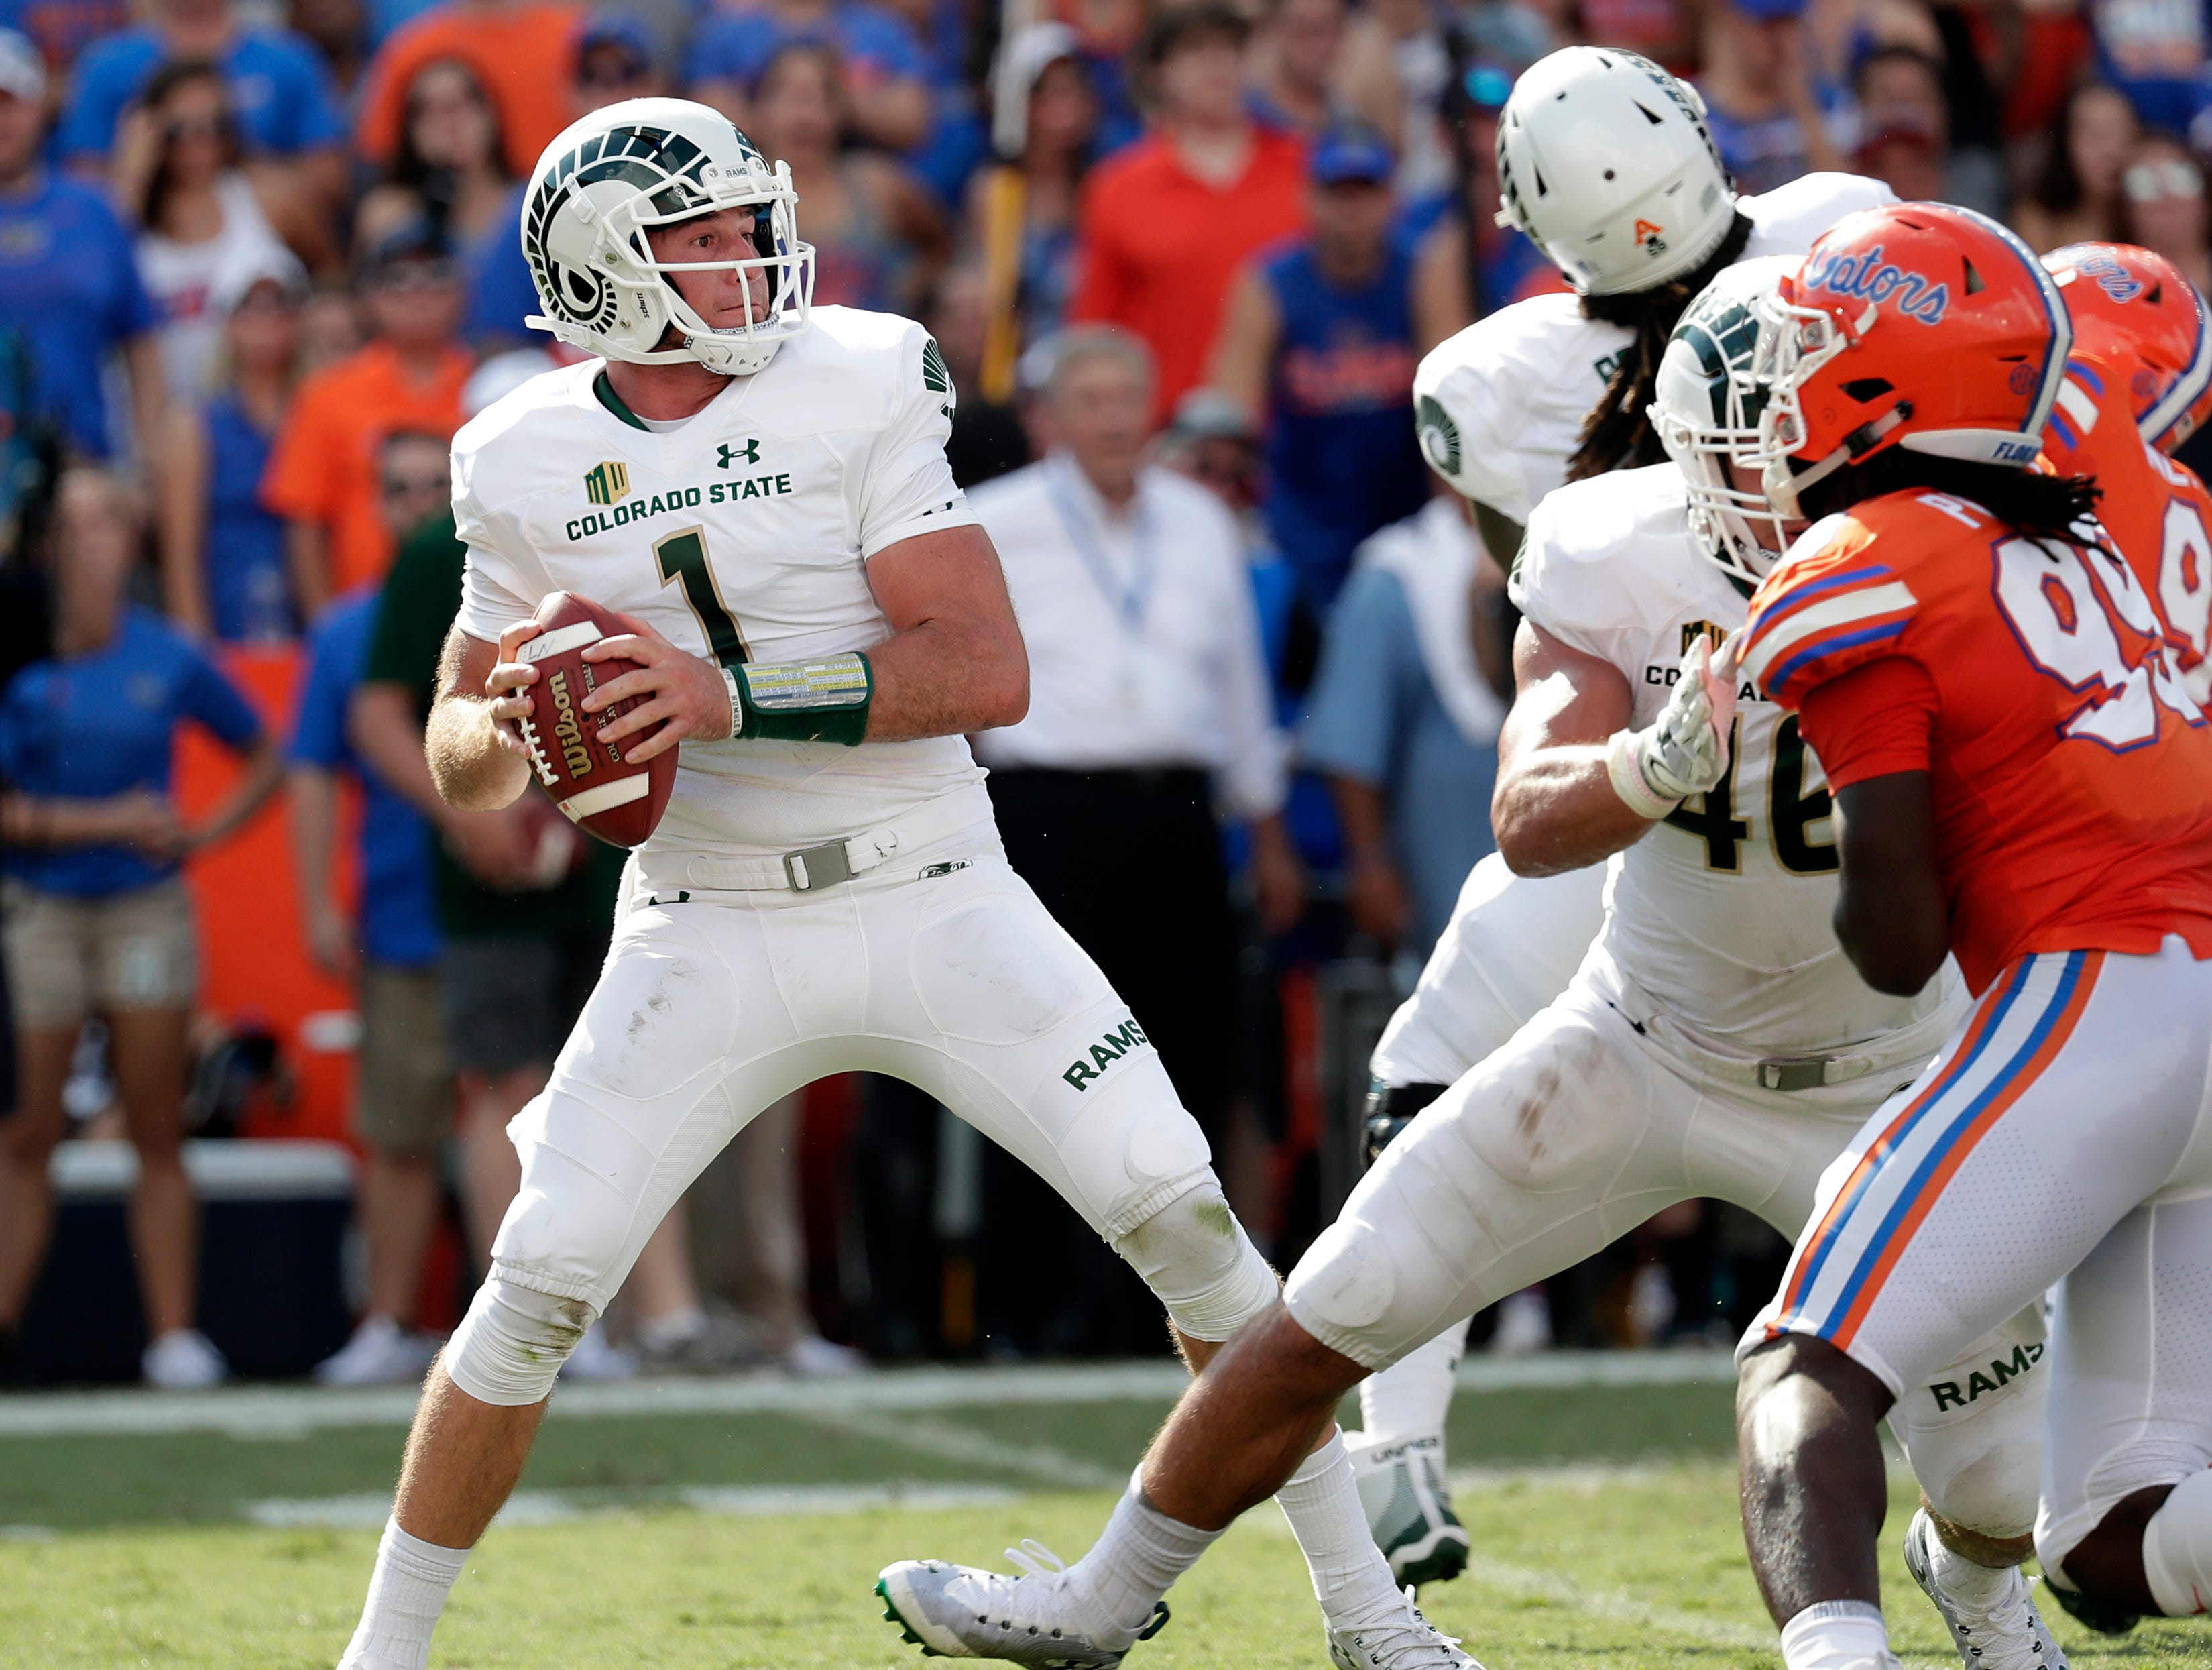 Colorado State quarterback K.J. Carta-Samuels looks for a receiver against Florida during the first half of an NCAA college football game, Saturday, Sept. 15, 2018, in Gainesville, Fla. (AP Photo/John Raoux)